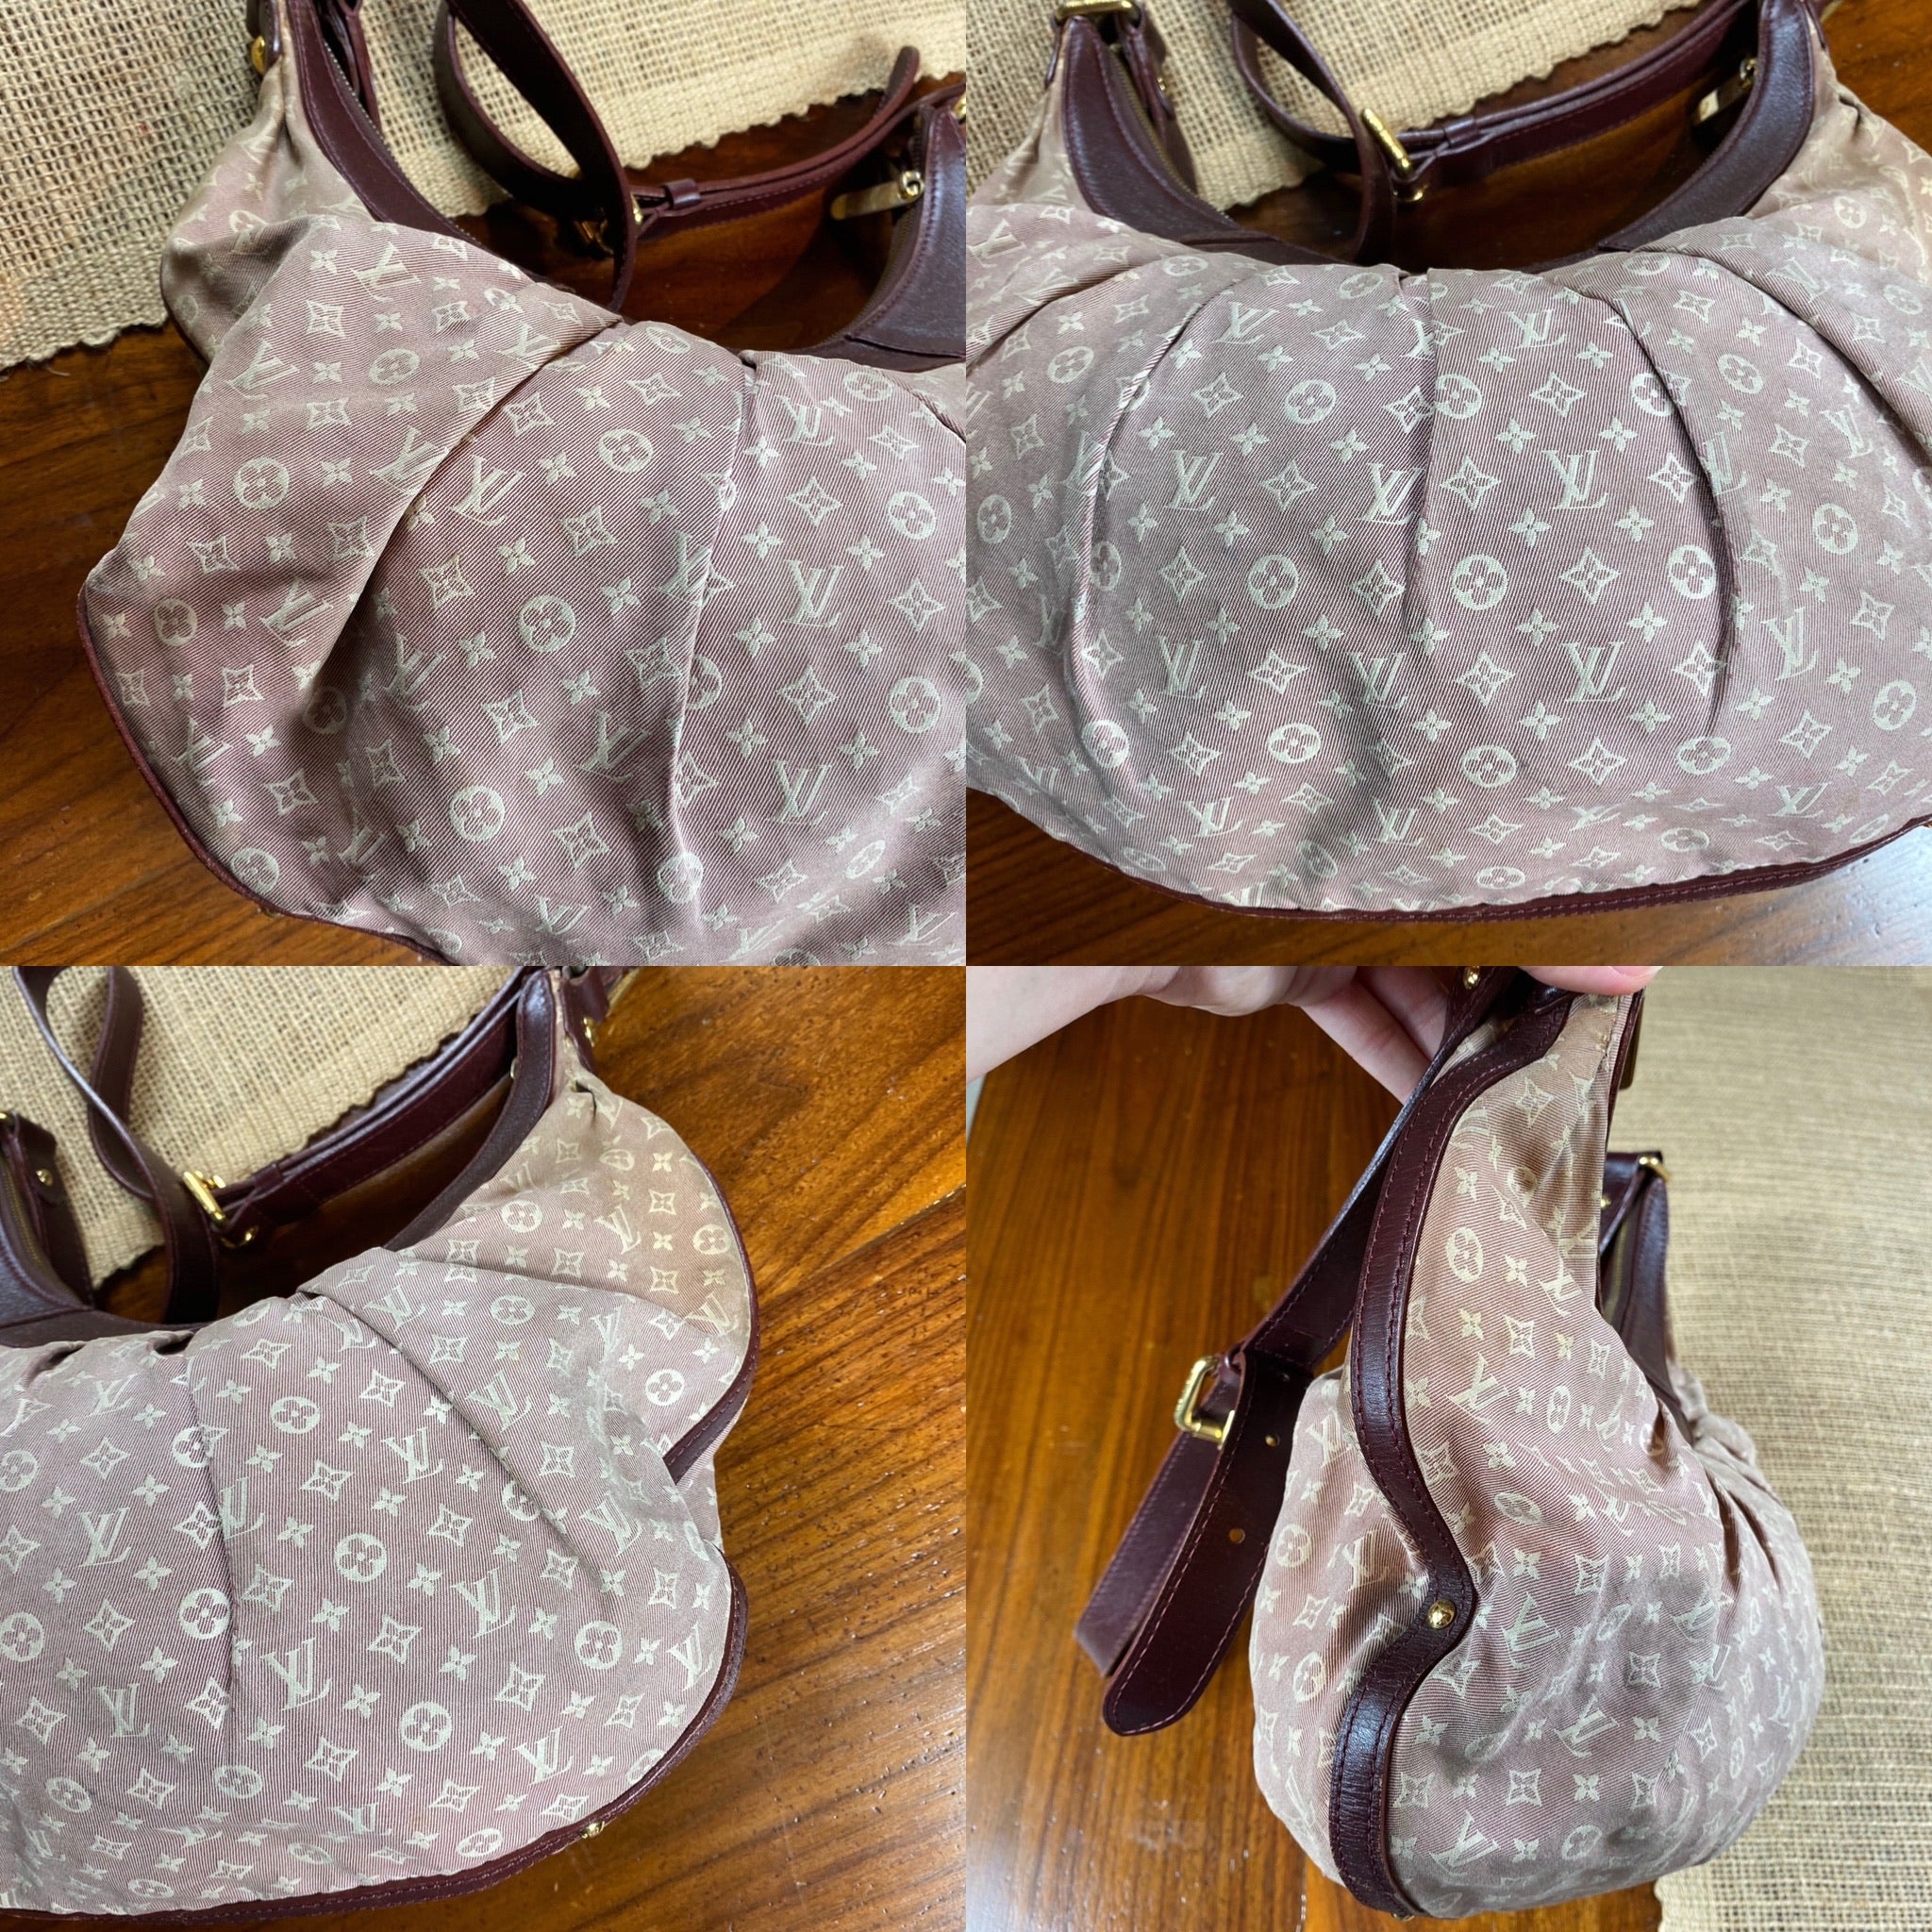 Louis Vuitton Idylle Rhapsodie Monogram MM